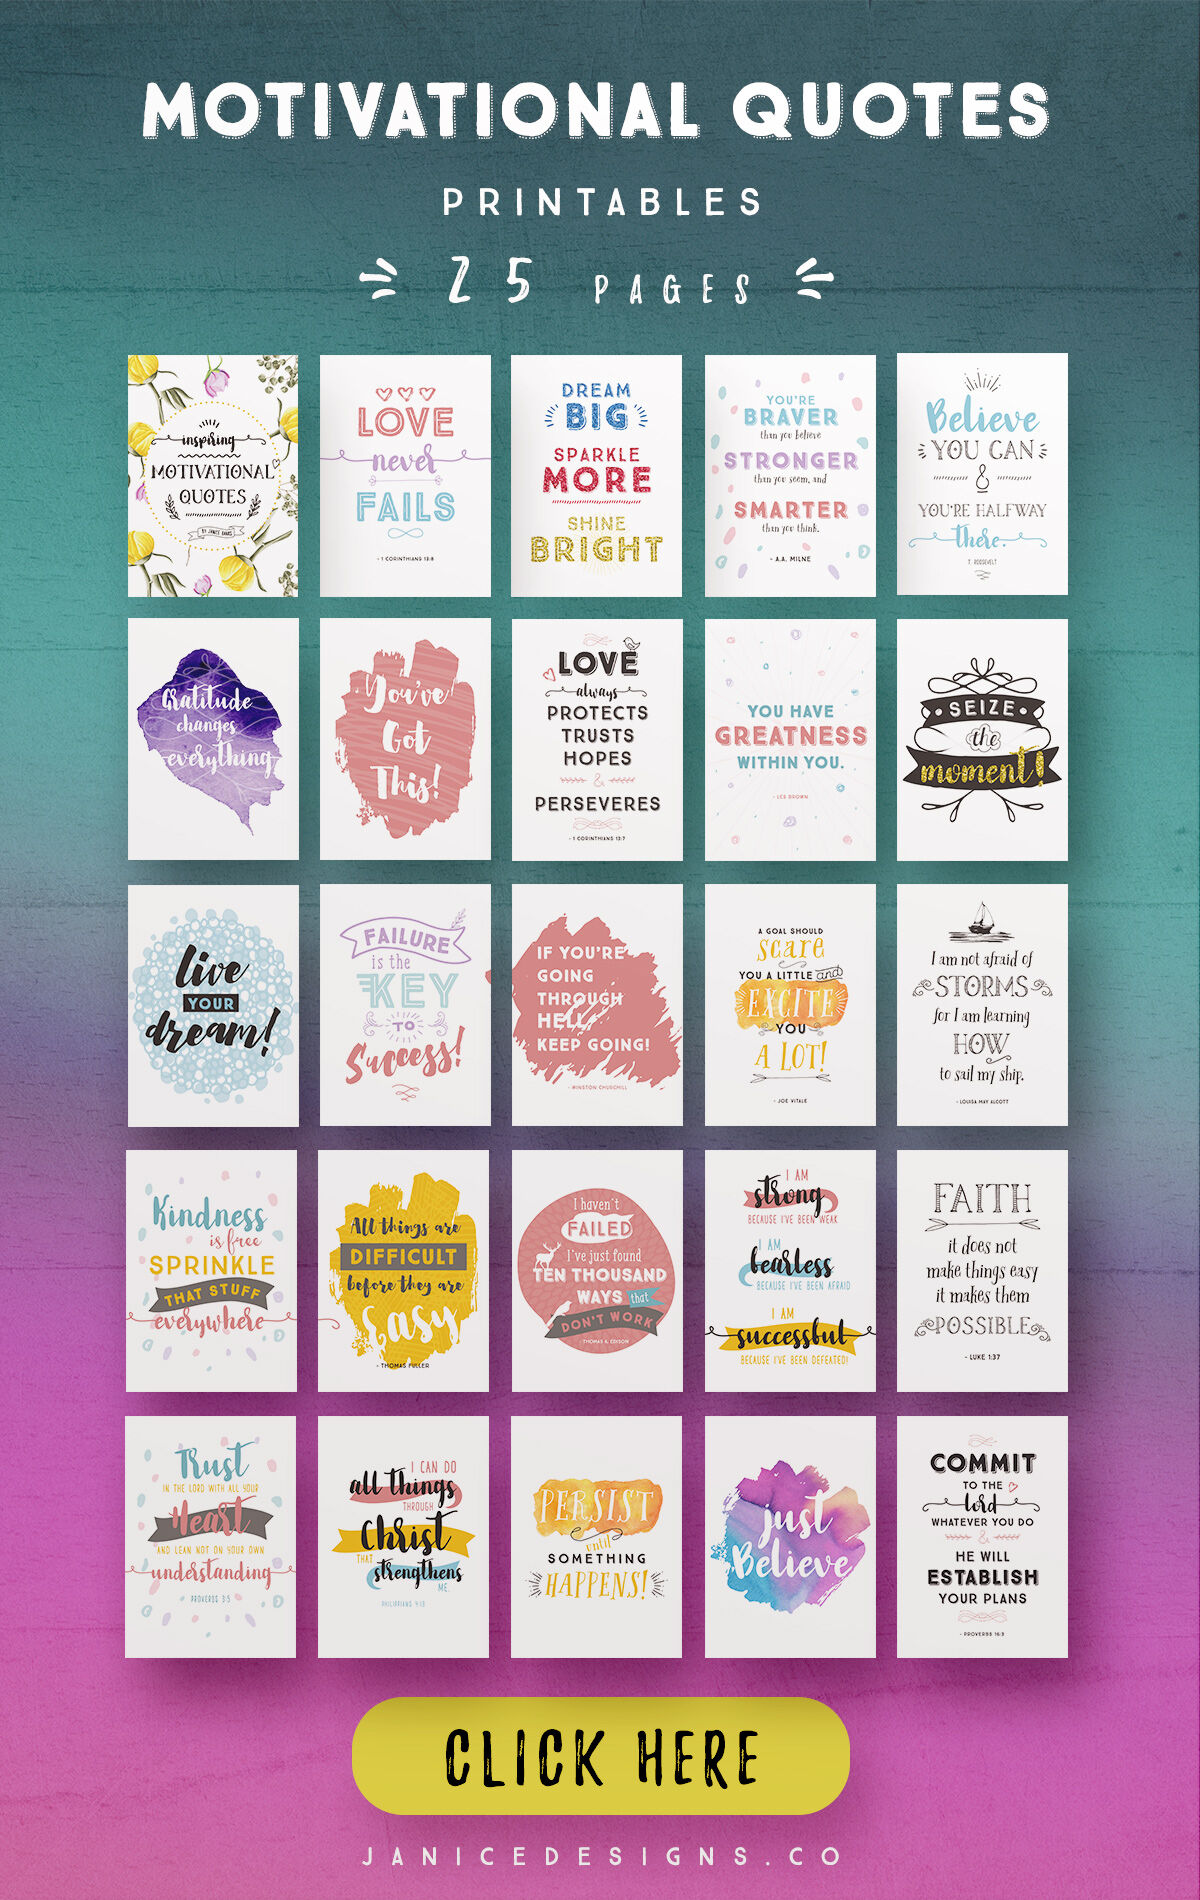 Motivational Quotes Printables 25 Pages By Janice Designs